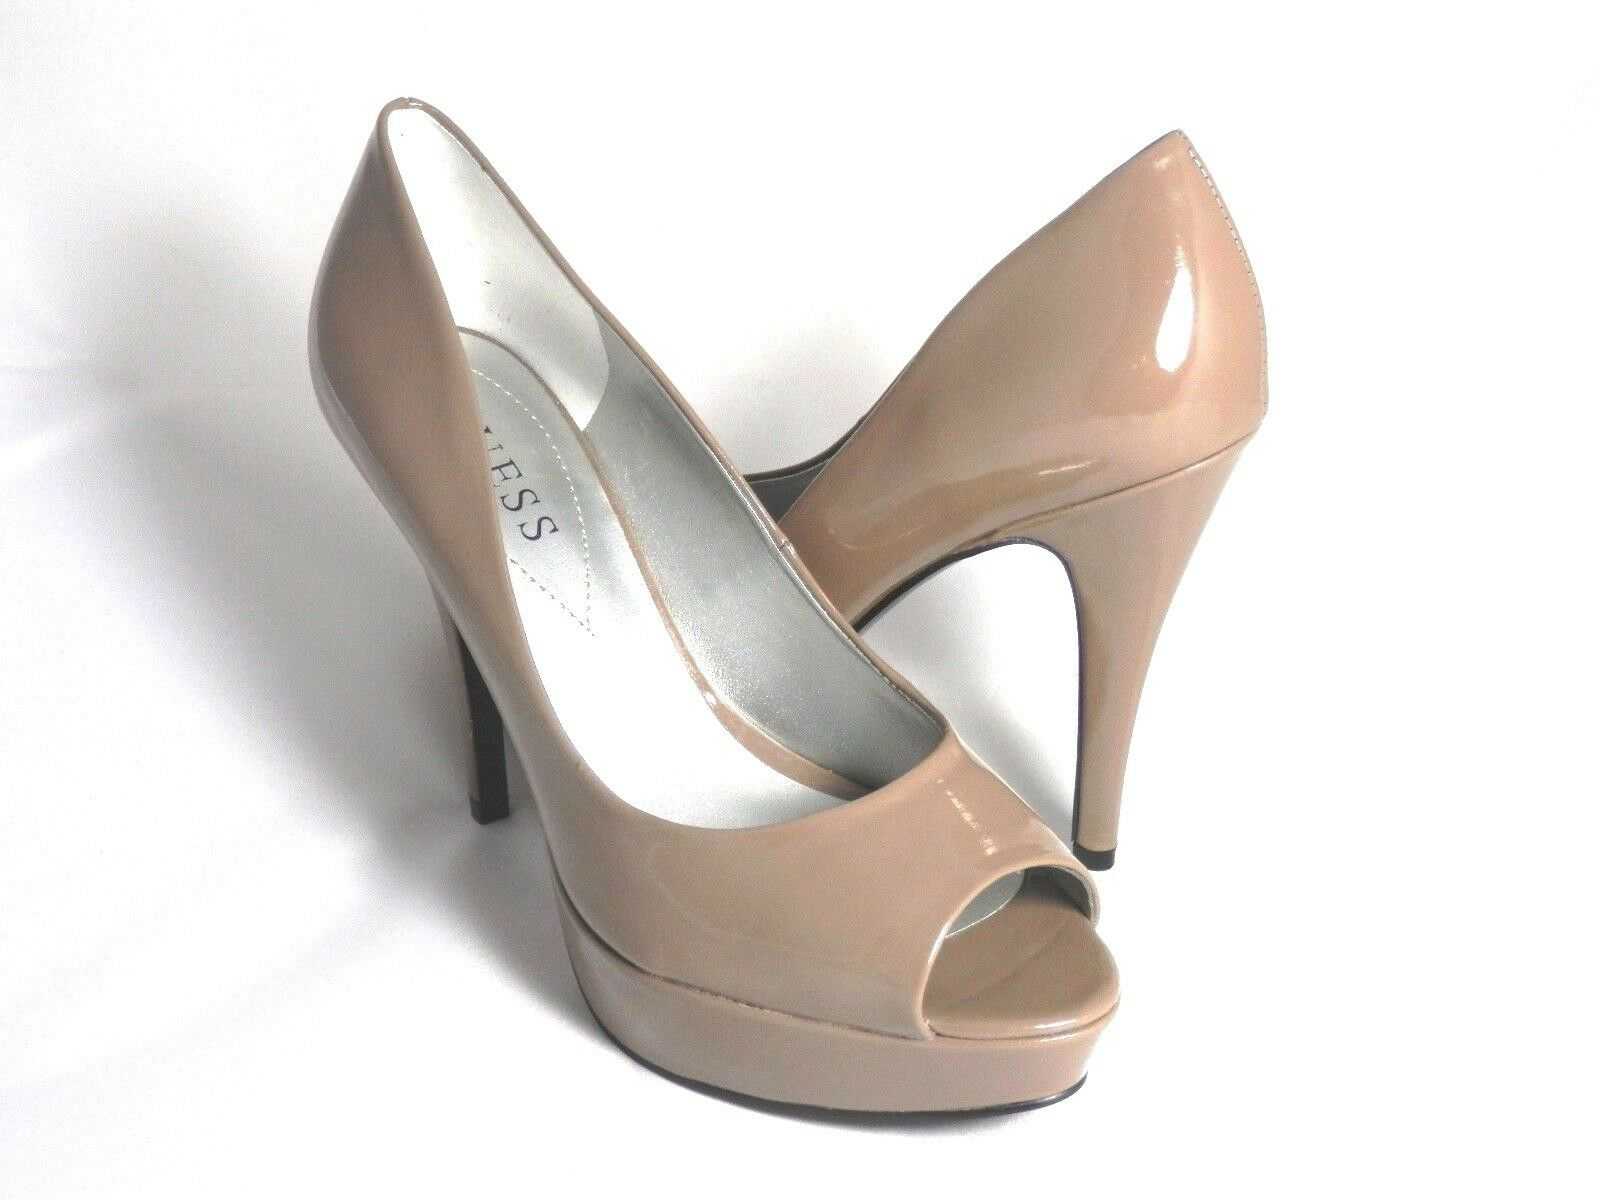 varie dimensioni New New New Display Guess Open Toe Pumps By Marciano Abellona Taupe Dimensione 10  perfezionare